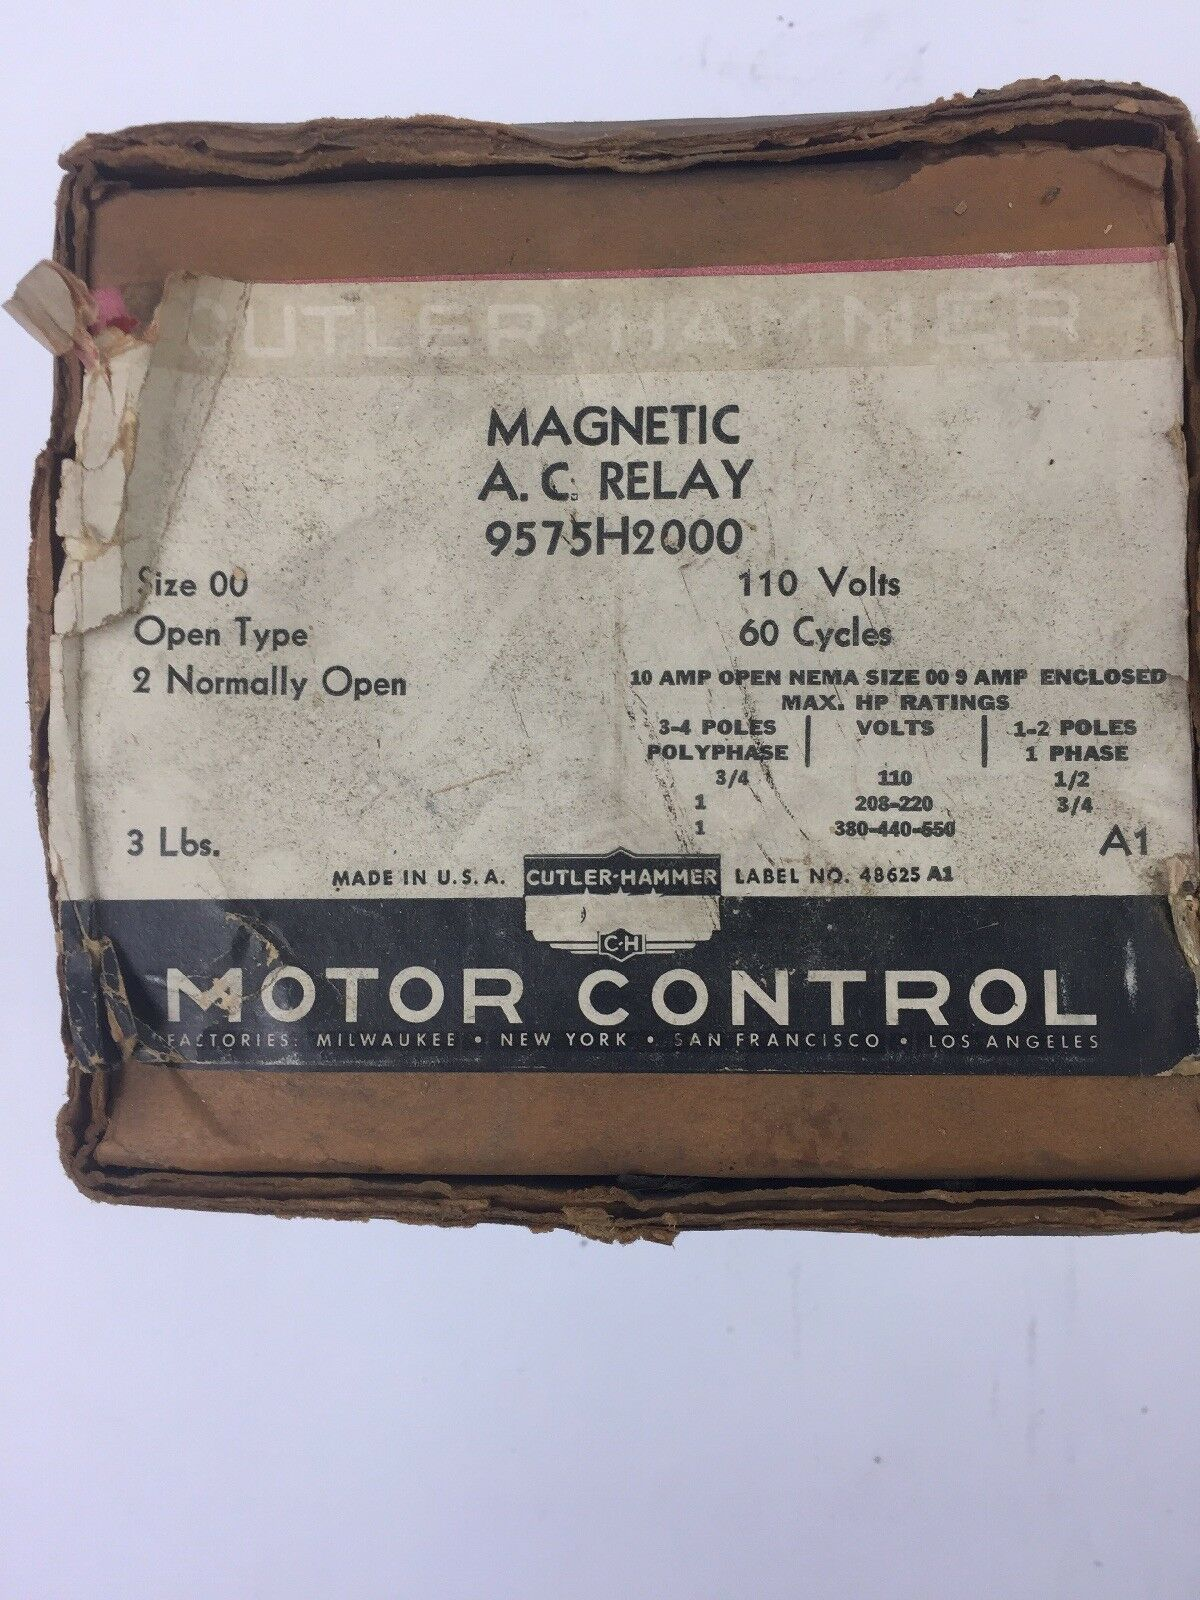 CUTLER HAMMER 9575H2000 MAGNETIC A.C. RELAY 110 VOLTS 60 CYCLES OPEN TYPE